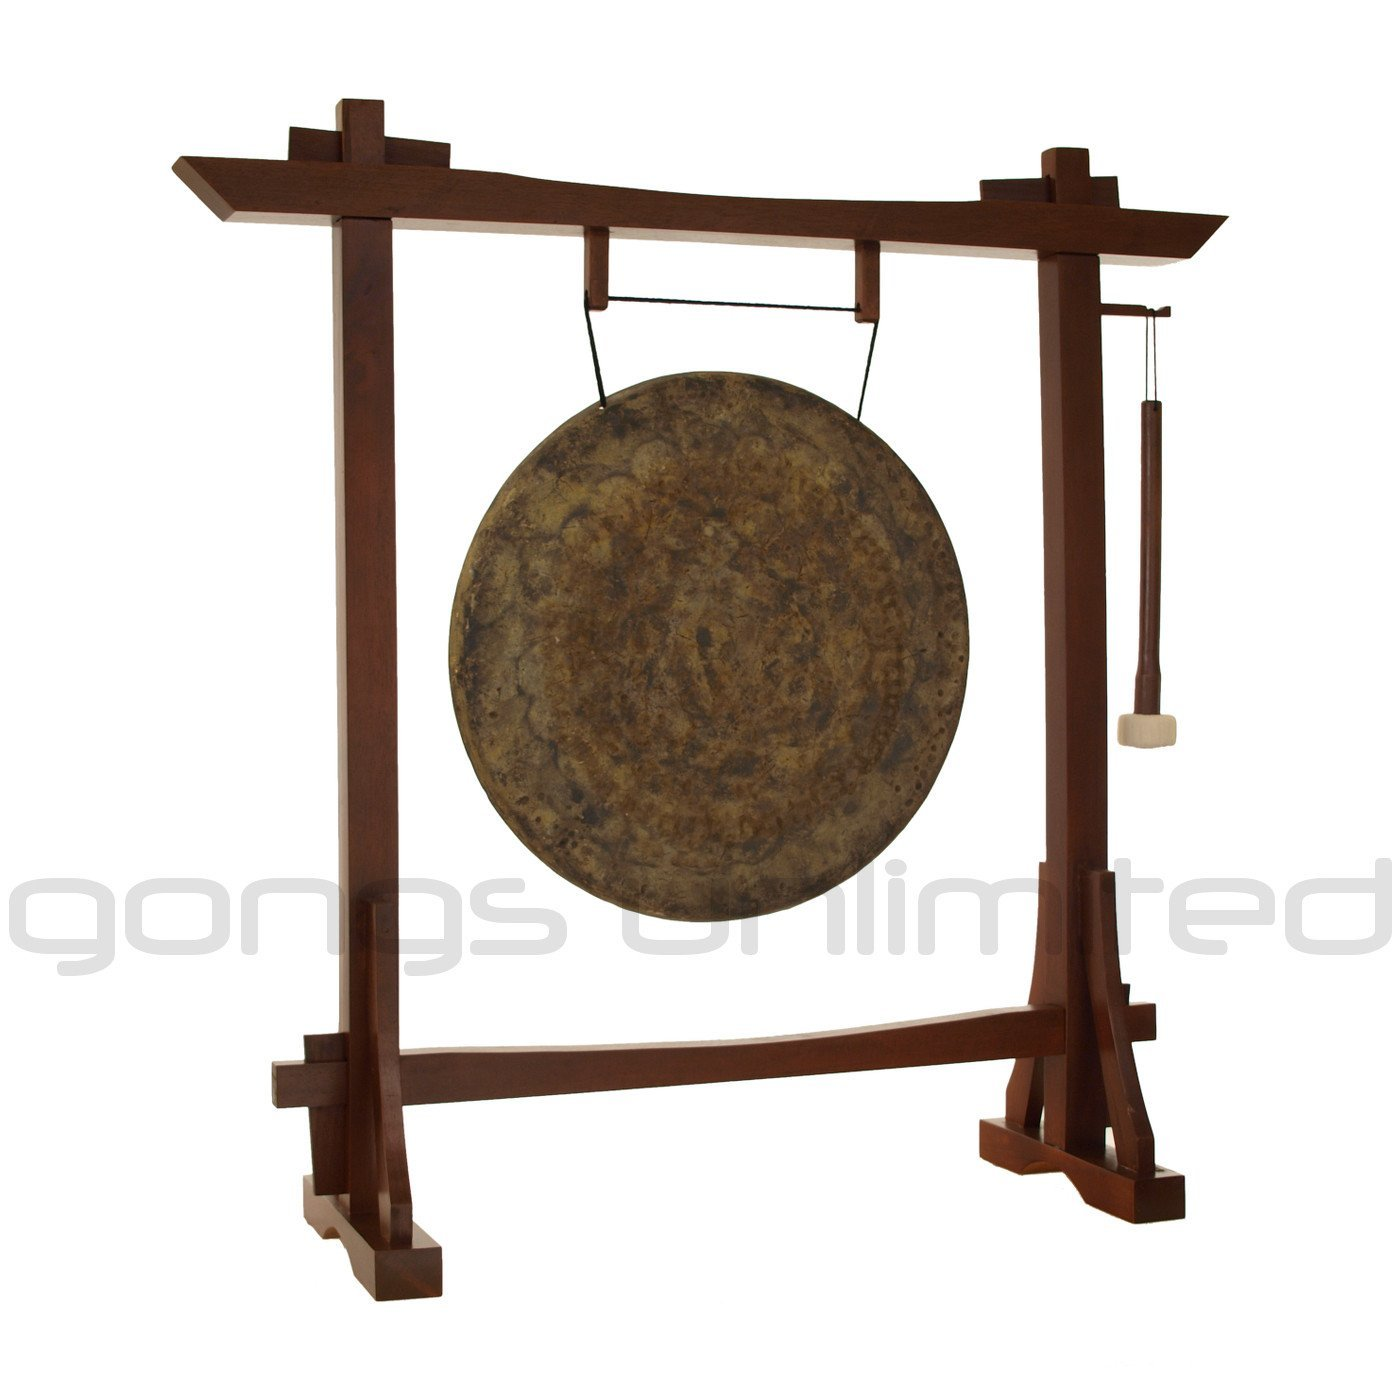 22'' Gongs on the Modern Antique Gong Stand